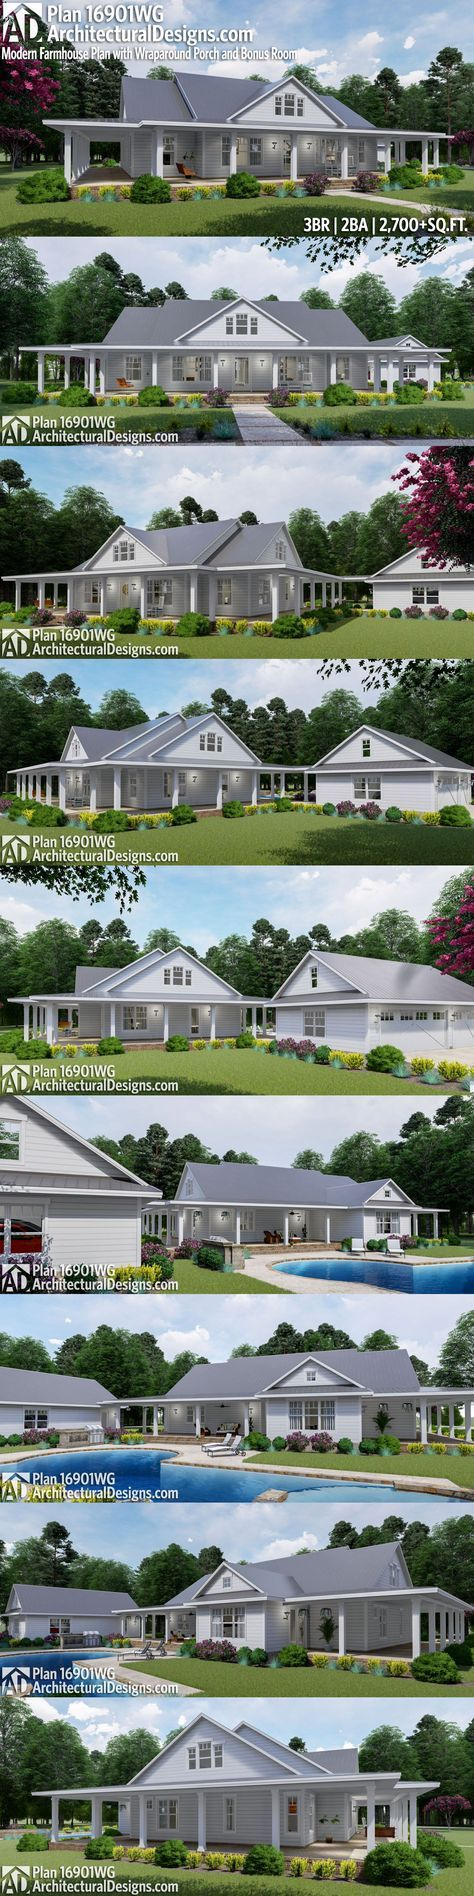 Architectural Designs Modern Farmhouse Plan 16901WG Gives You 3 Beds 2 Baths And Over 2700